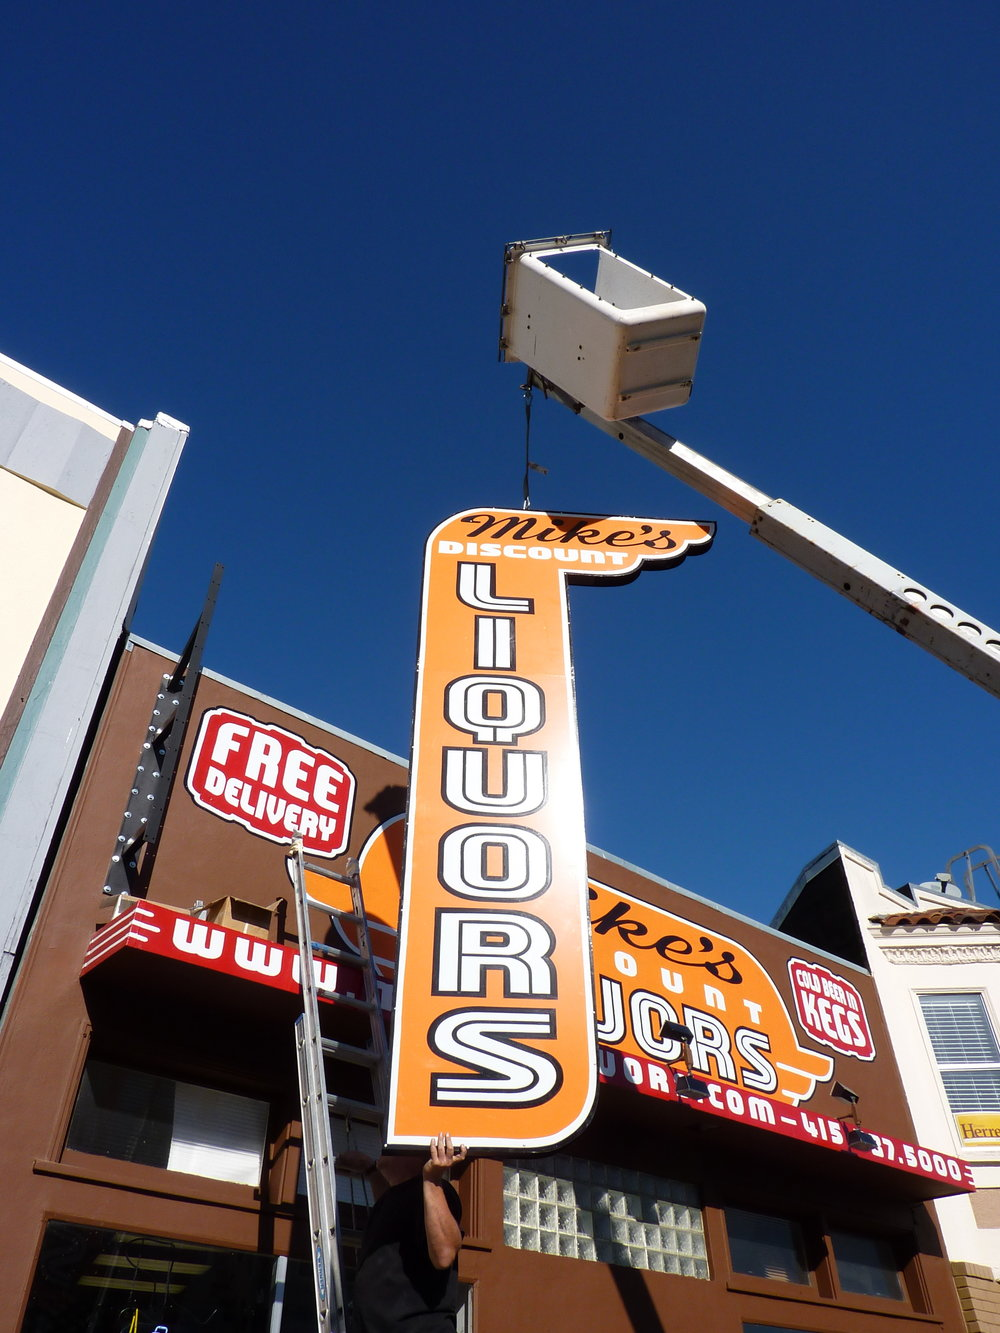 HAND-mikes-liquors-blade-sign-installation_4307282896_o.jpg